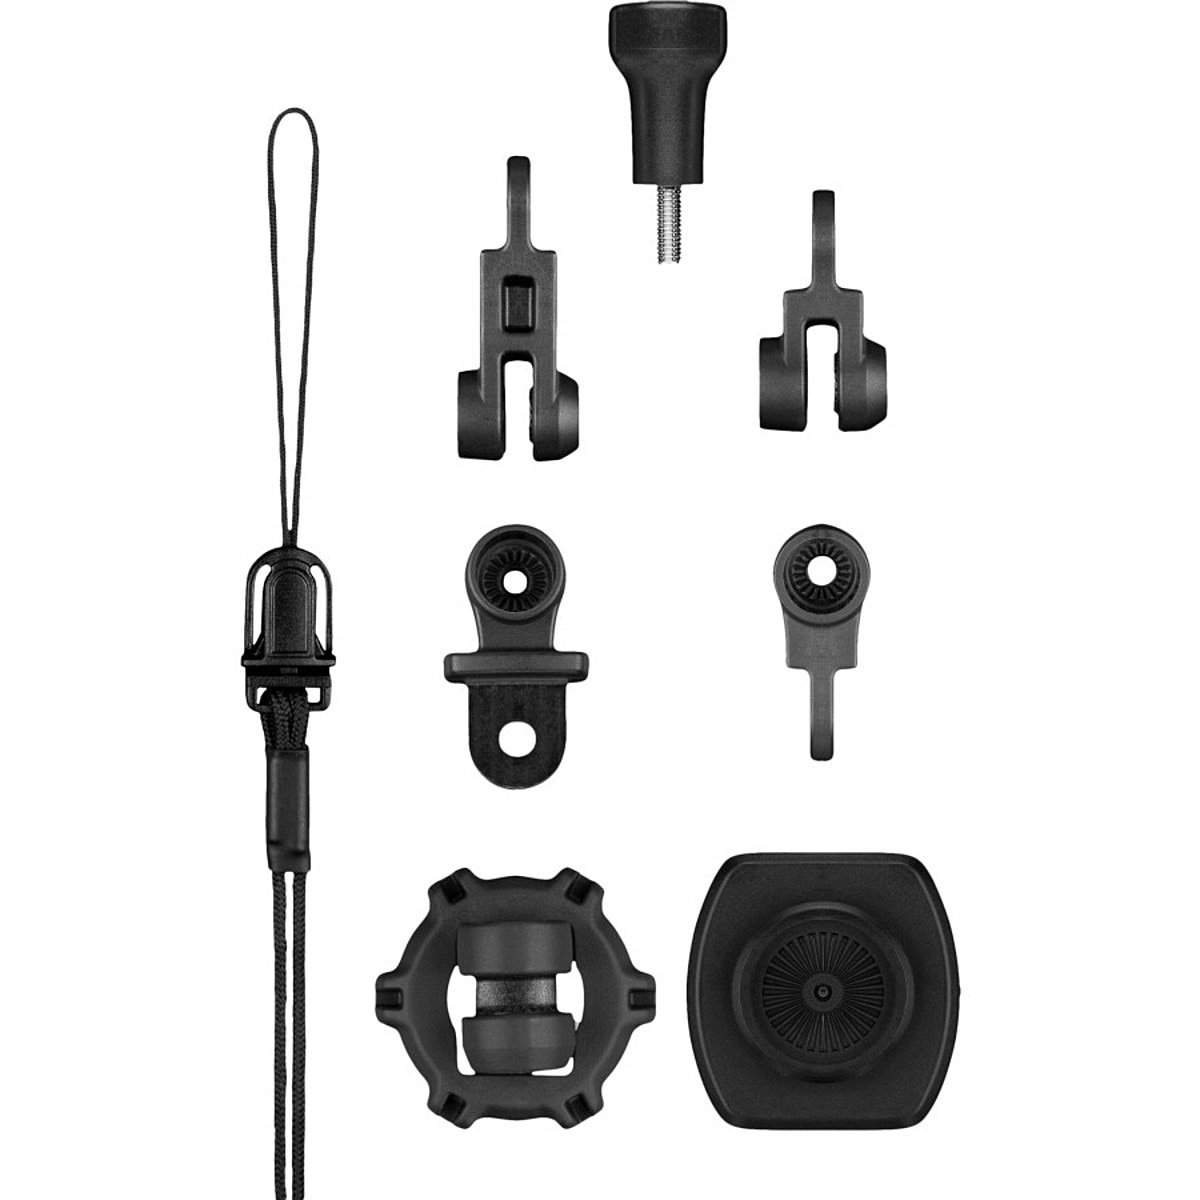 Garmin Adjustable Mounting Arm Kit One Color One Size